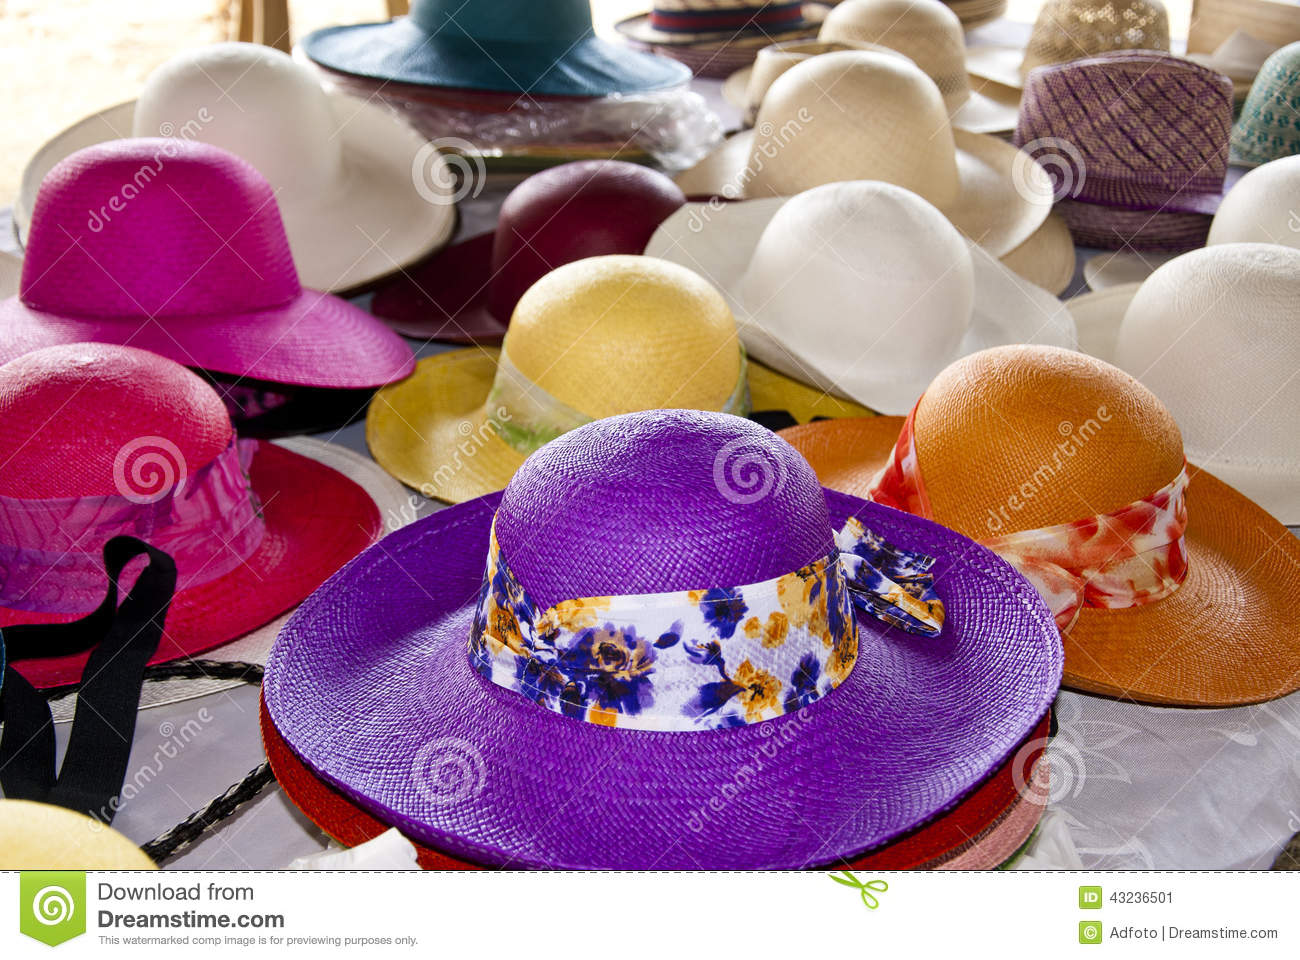 Accessory - Feminine Straw Hats Stock Image - Image of knitting ... b5ffc0a3c75